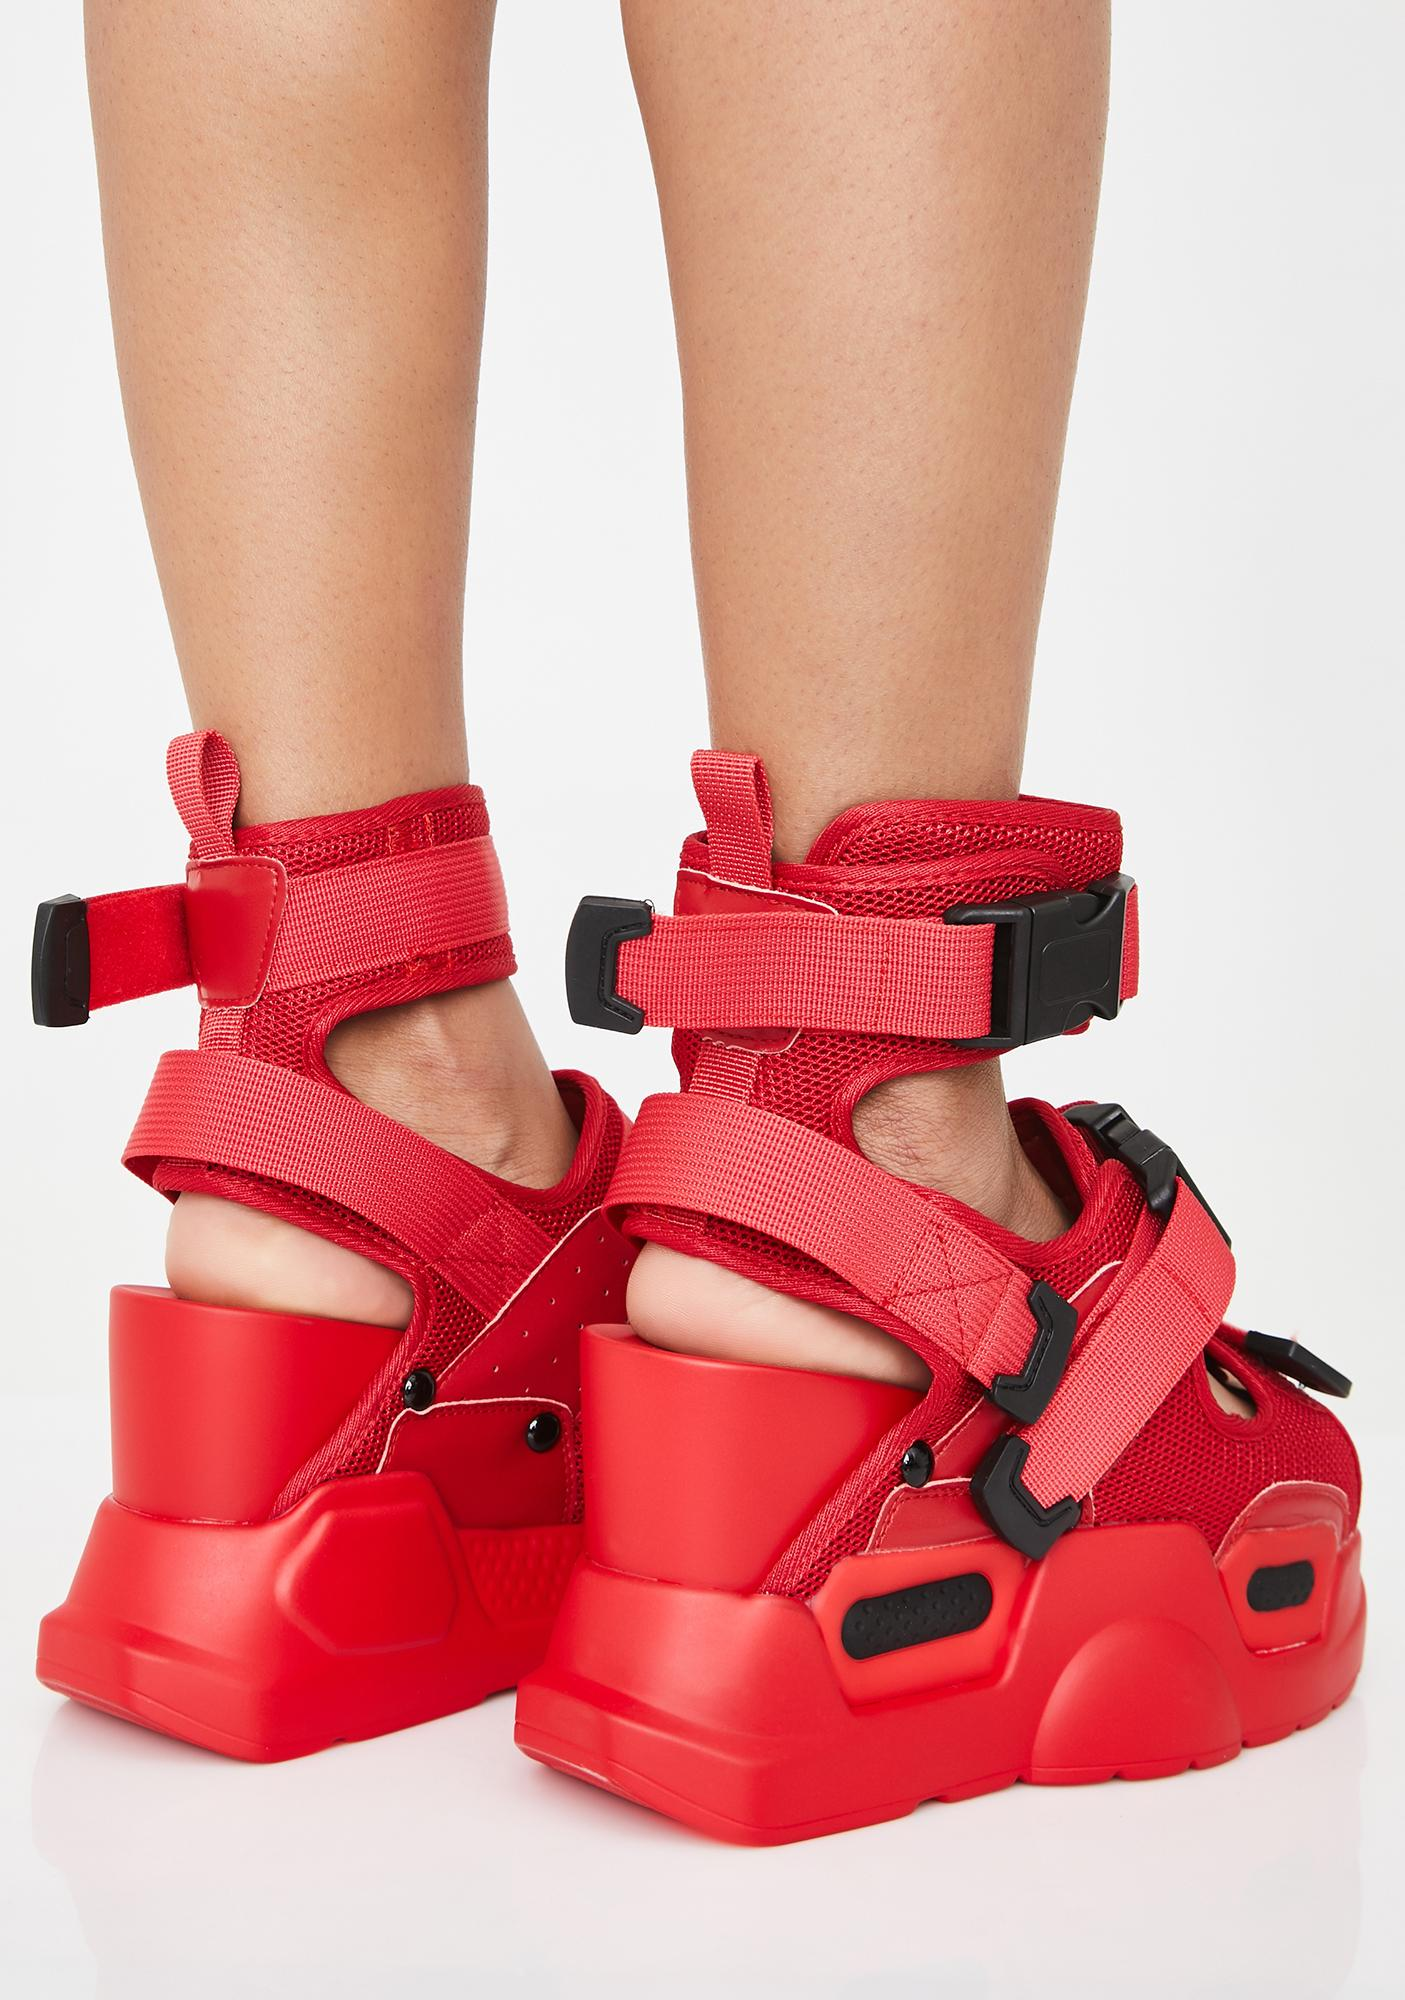 Anthony Wang Fire Daily Hustle Platform Sandals